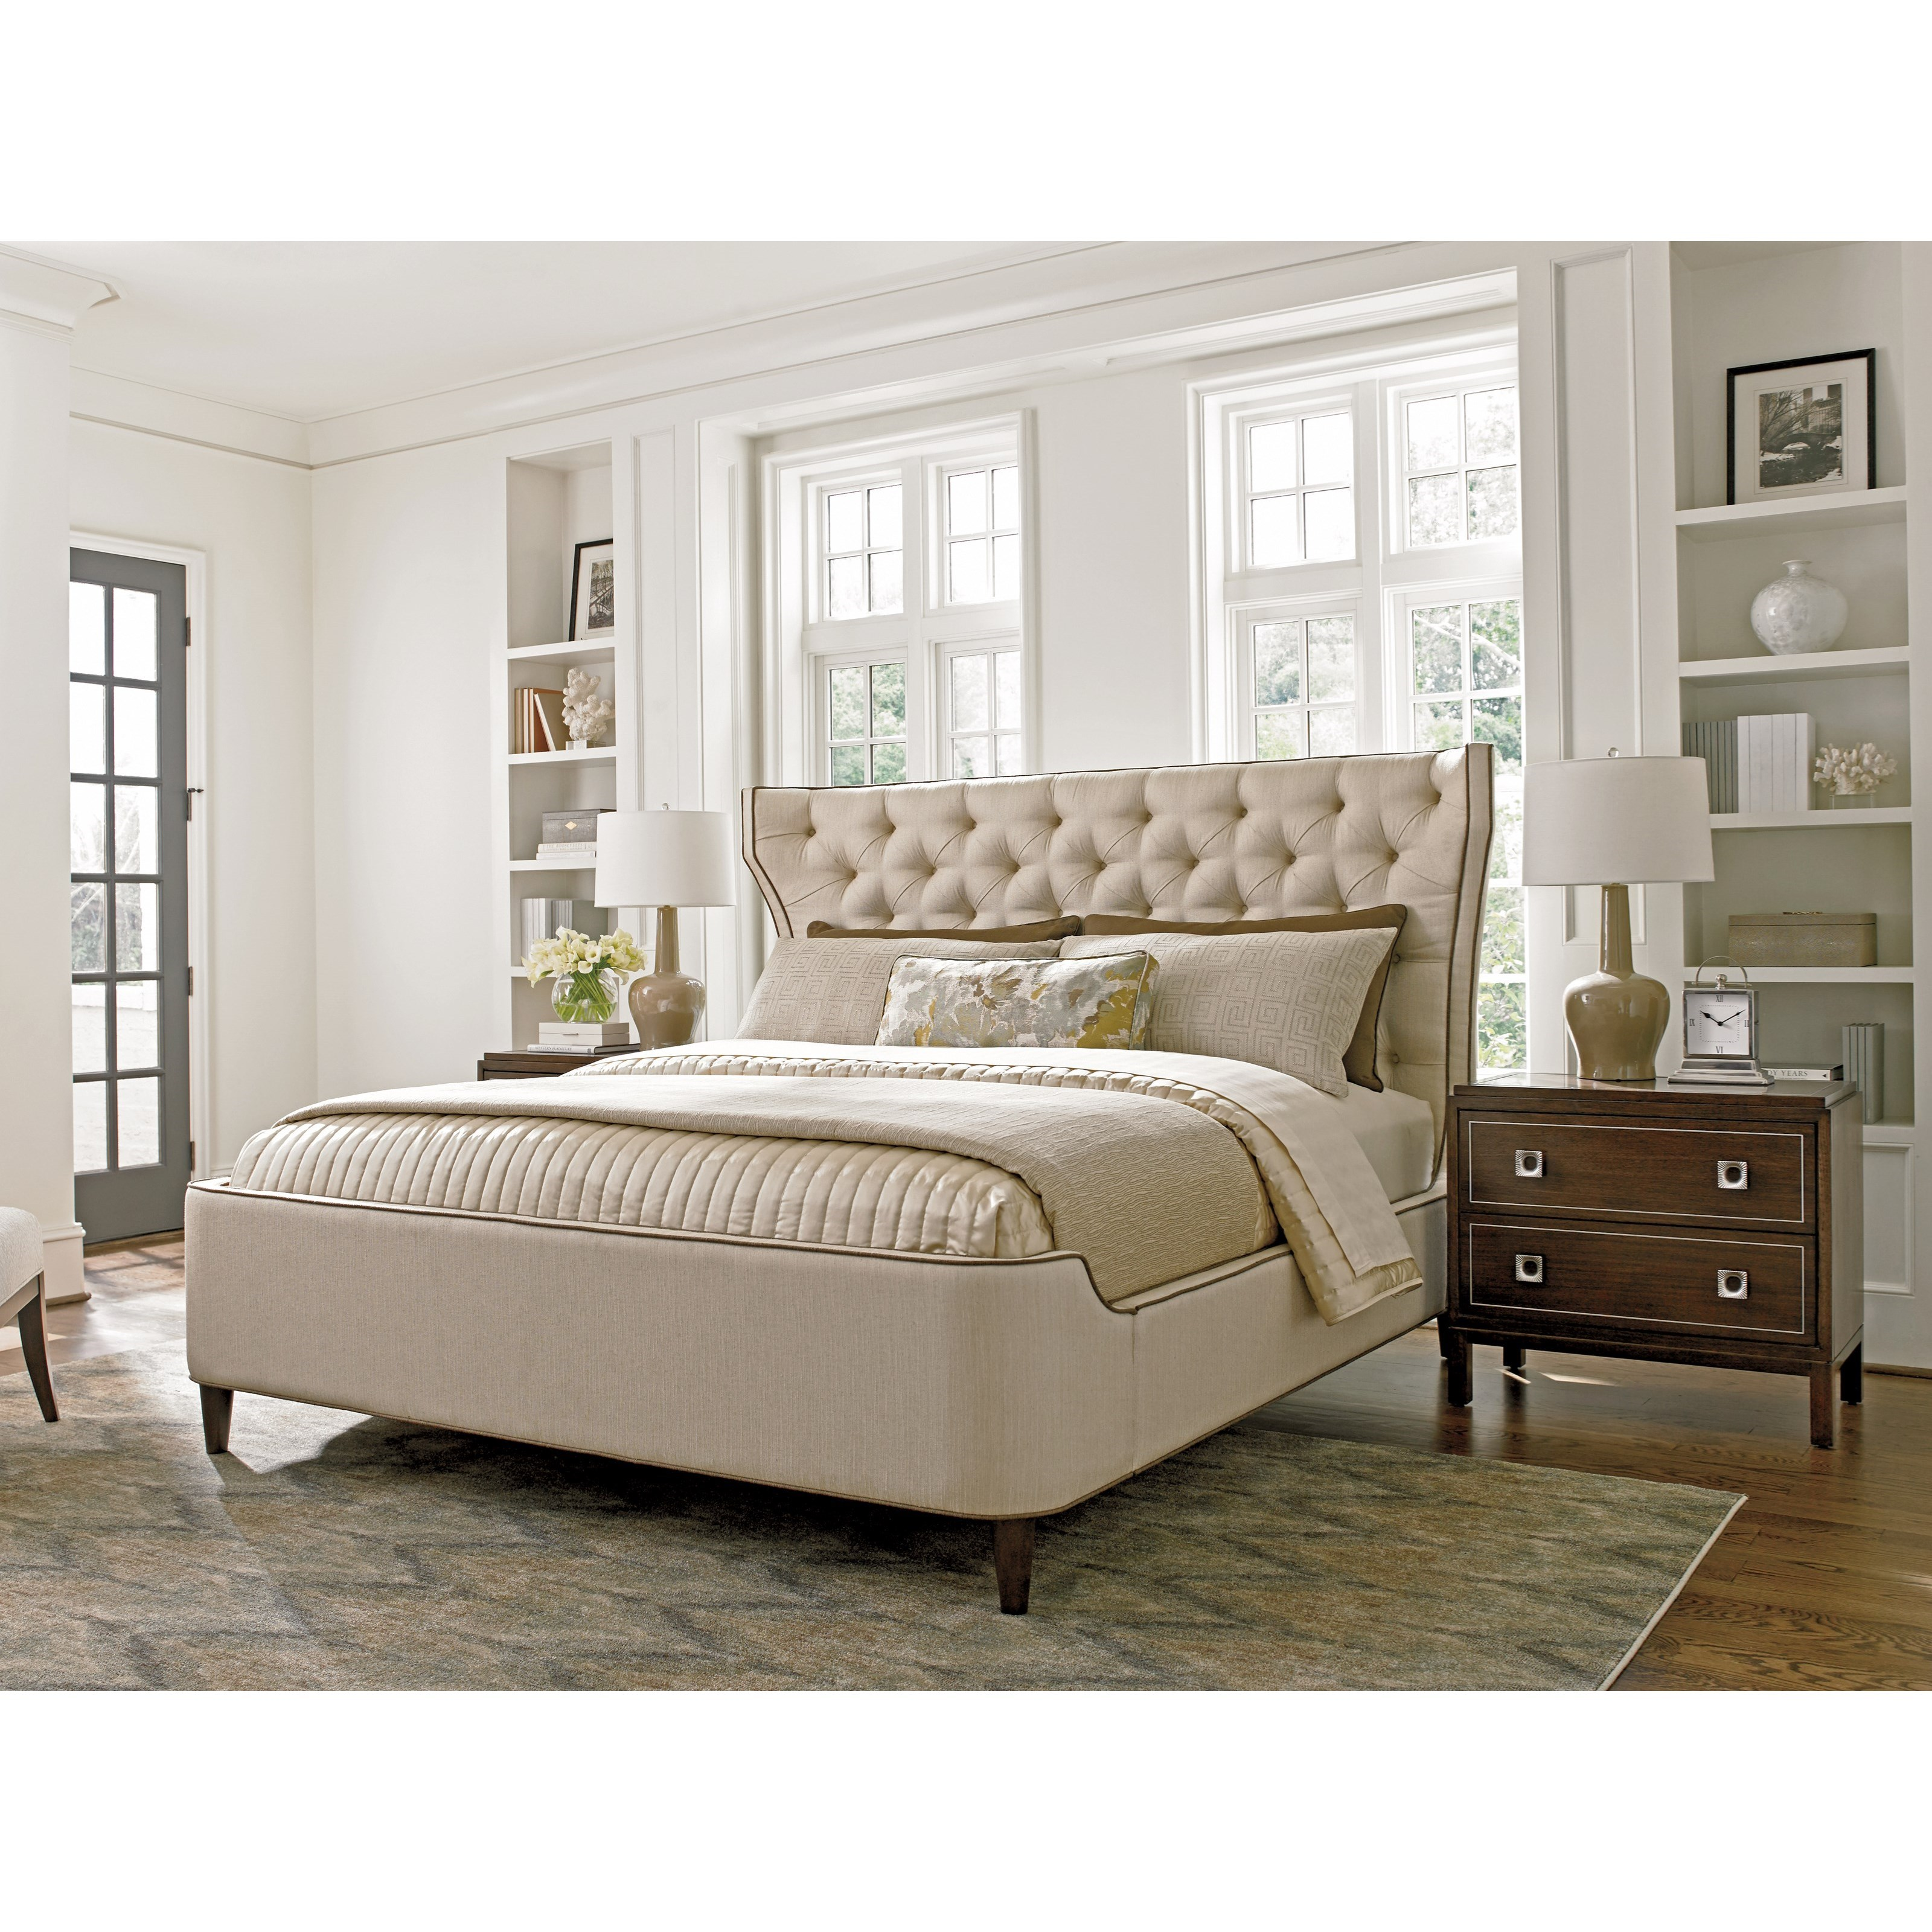 MacArthur Park Queen Bedroom Group by Lexington at Johnny Janosik